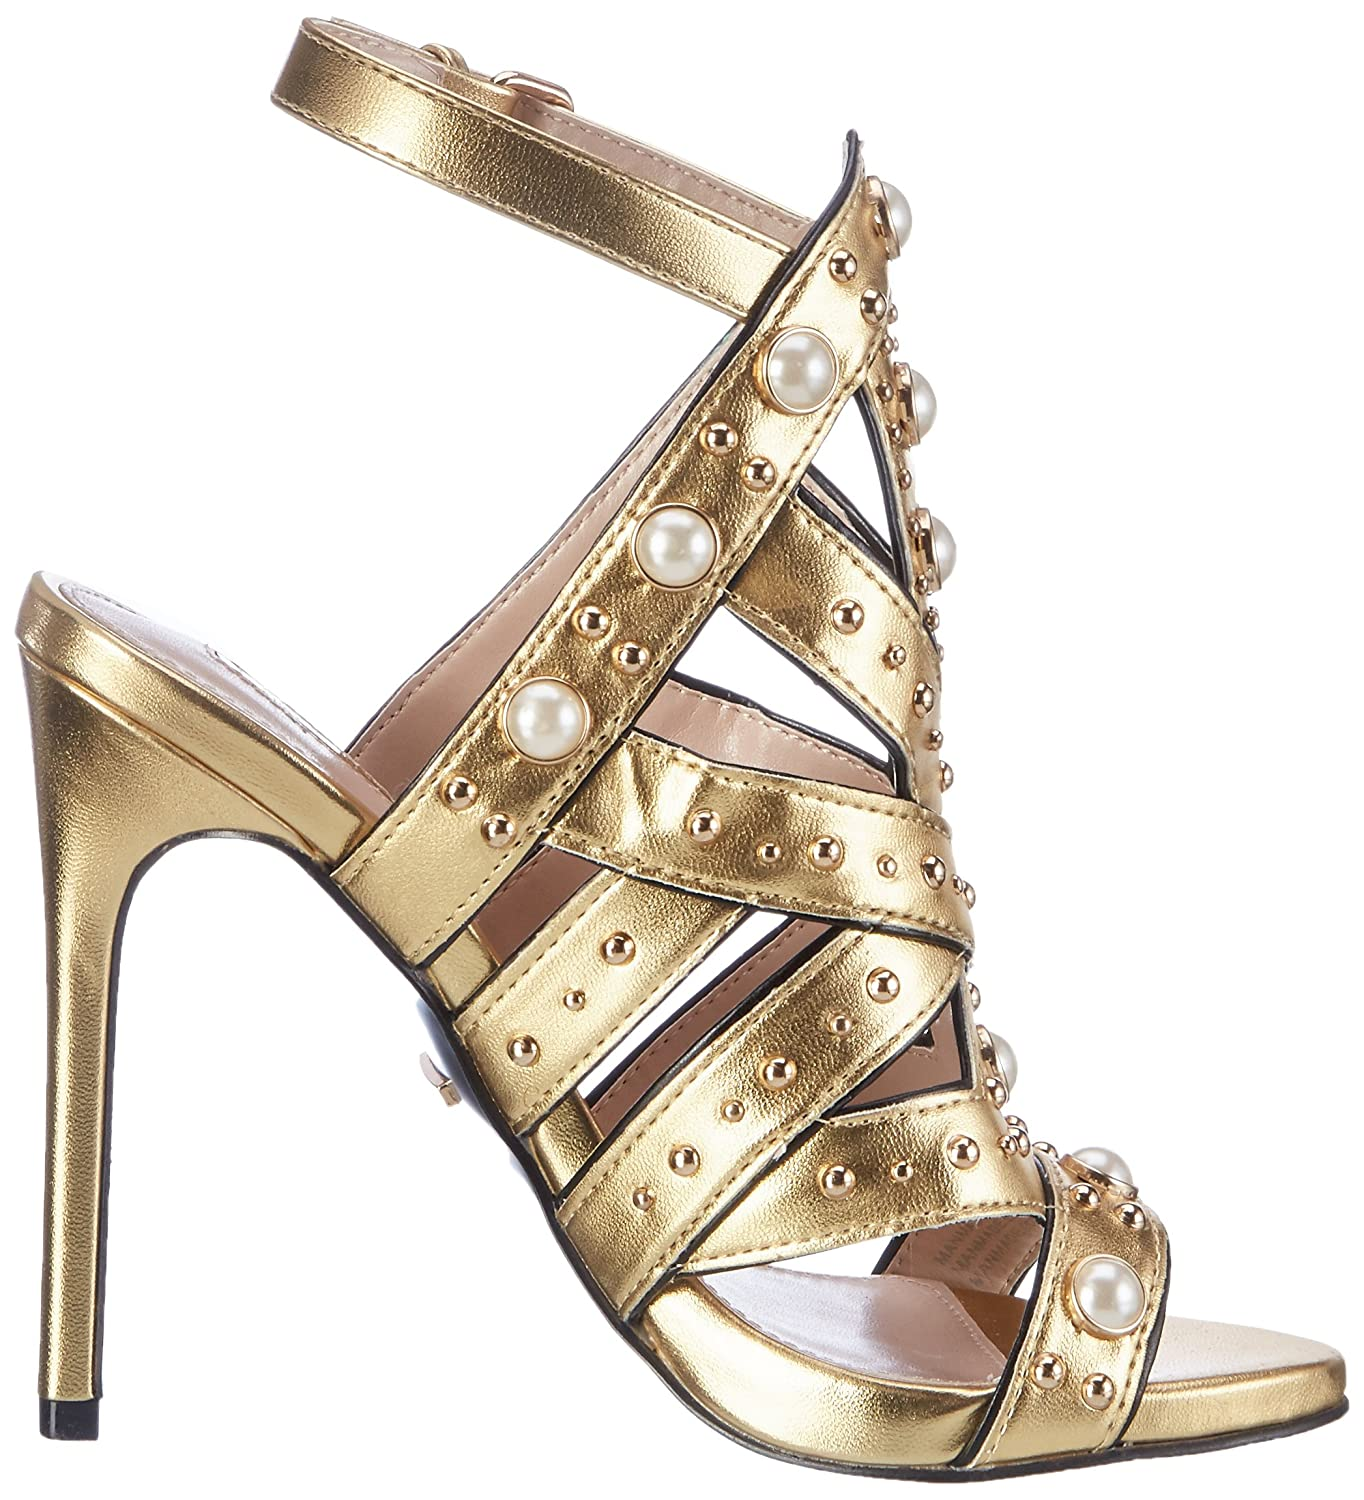 Carvela (CARU) Women's Goldie Np Open-Toe Heels: Amazon.co.uk: Shoes & Bags